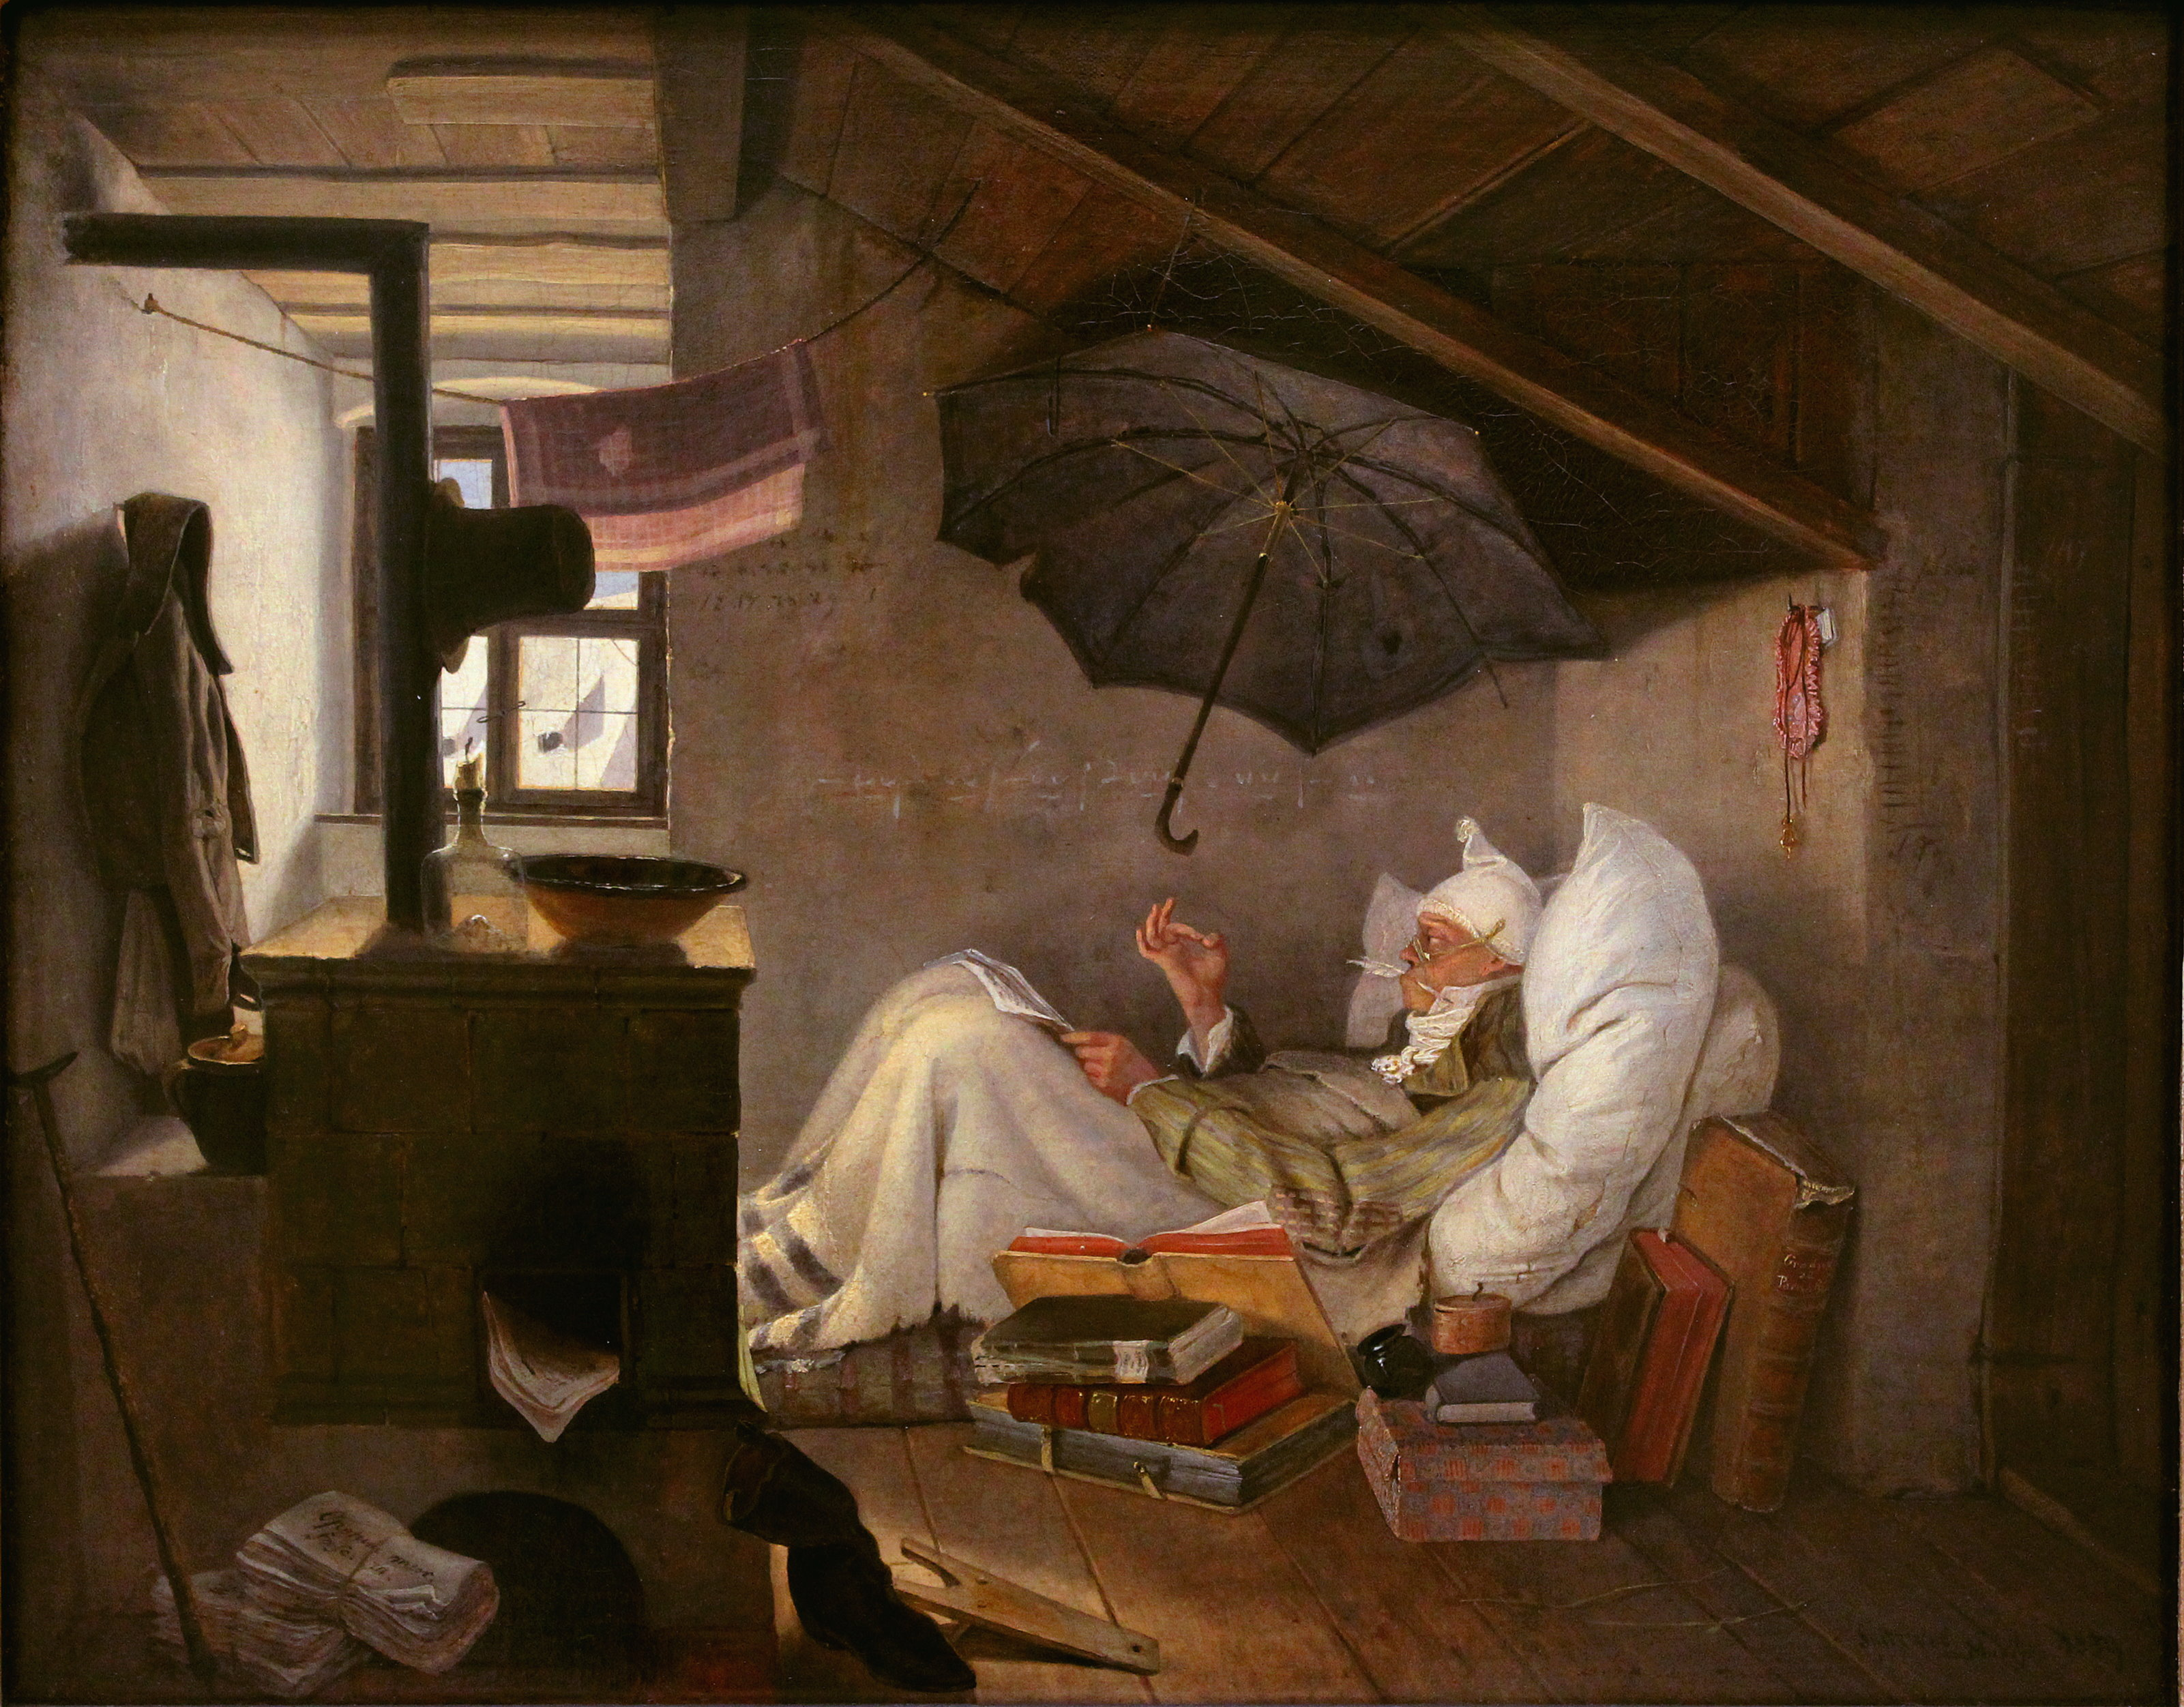 https://upload.wikimedia.org/wikipedia/commons/8/85/Carl_Spitzweg_-_Der_arme_Poet_%28Neue_Pinakothek%29.jpg